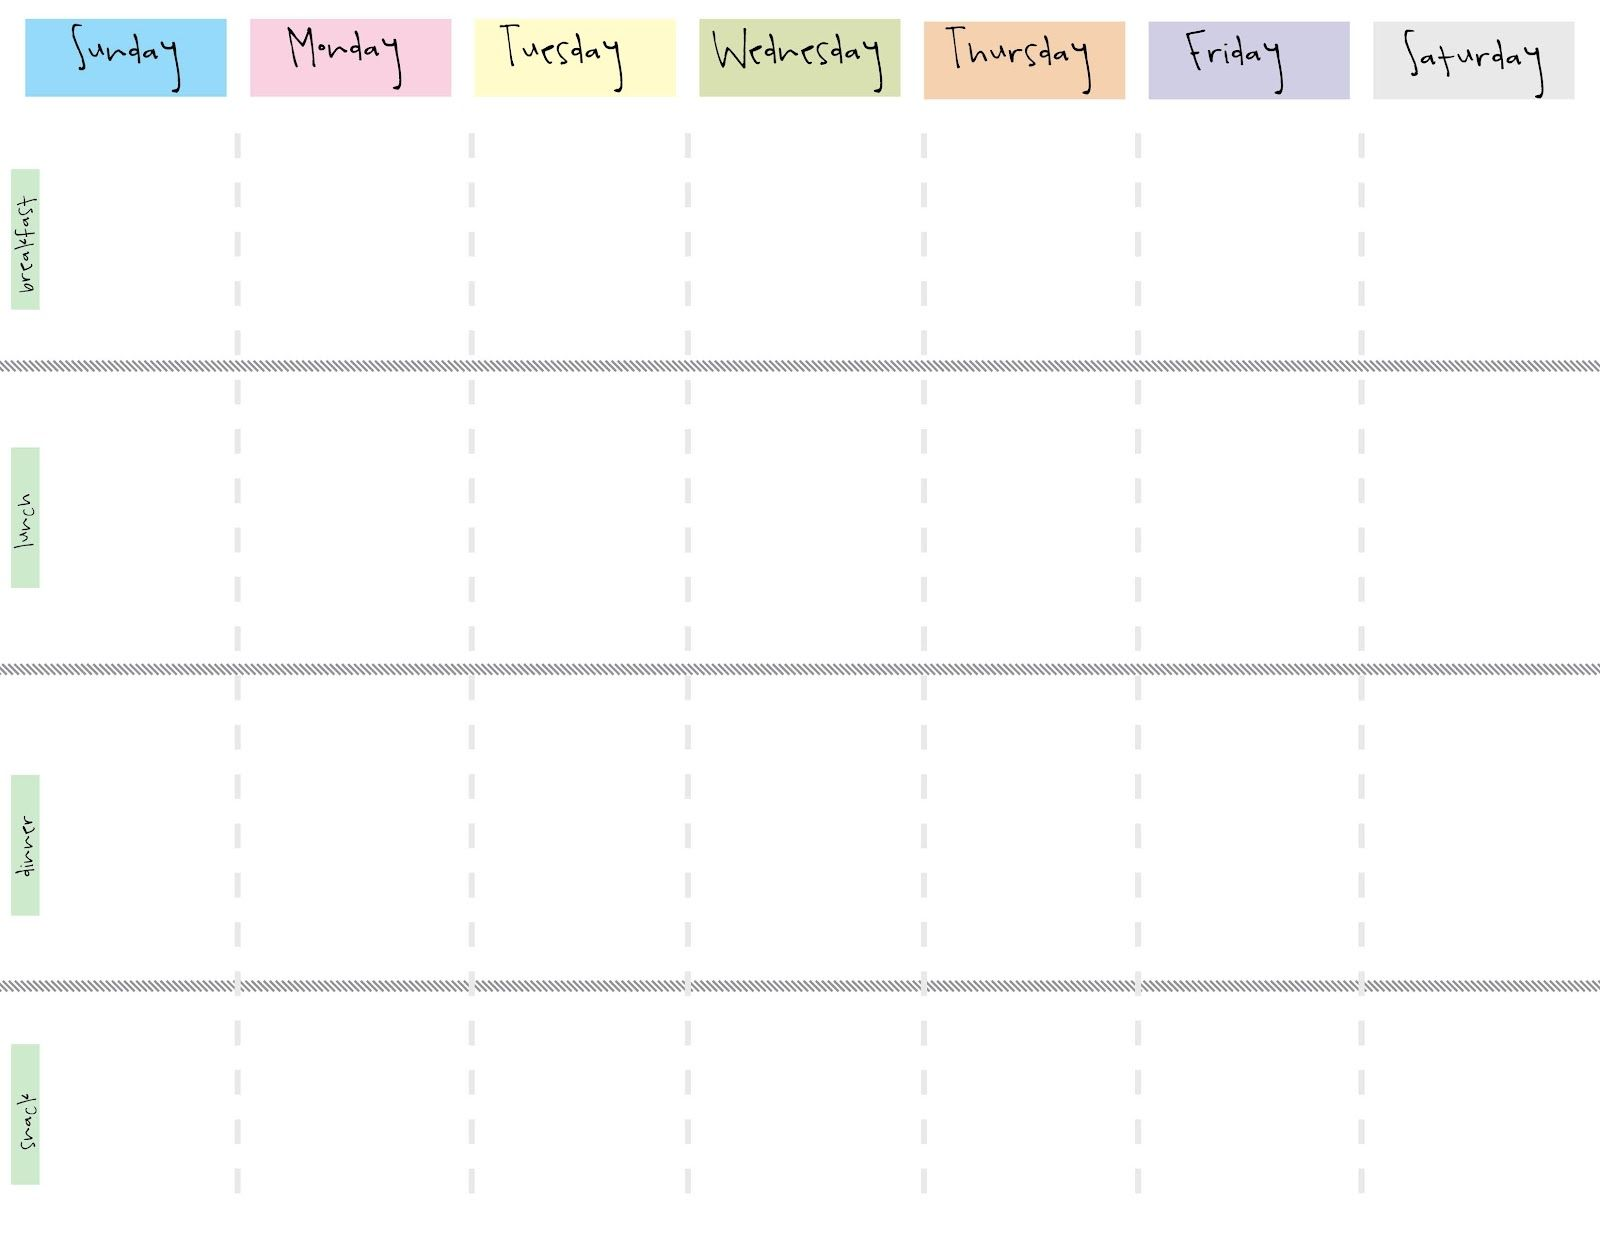 graphic about Weekly Calendar Printable named 8 great pictures of adorable printable weekly calendar printable